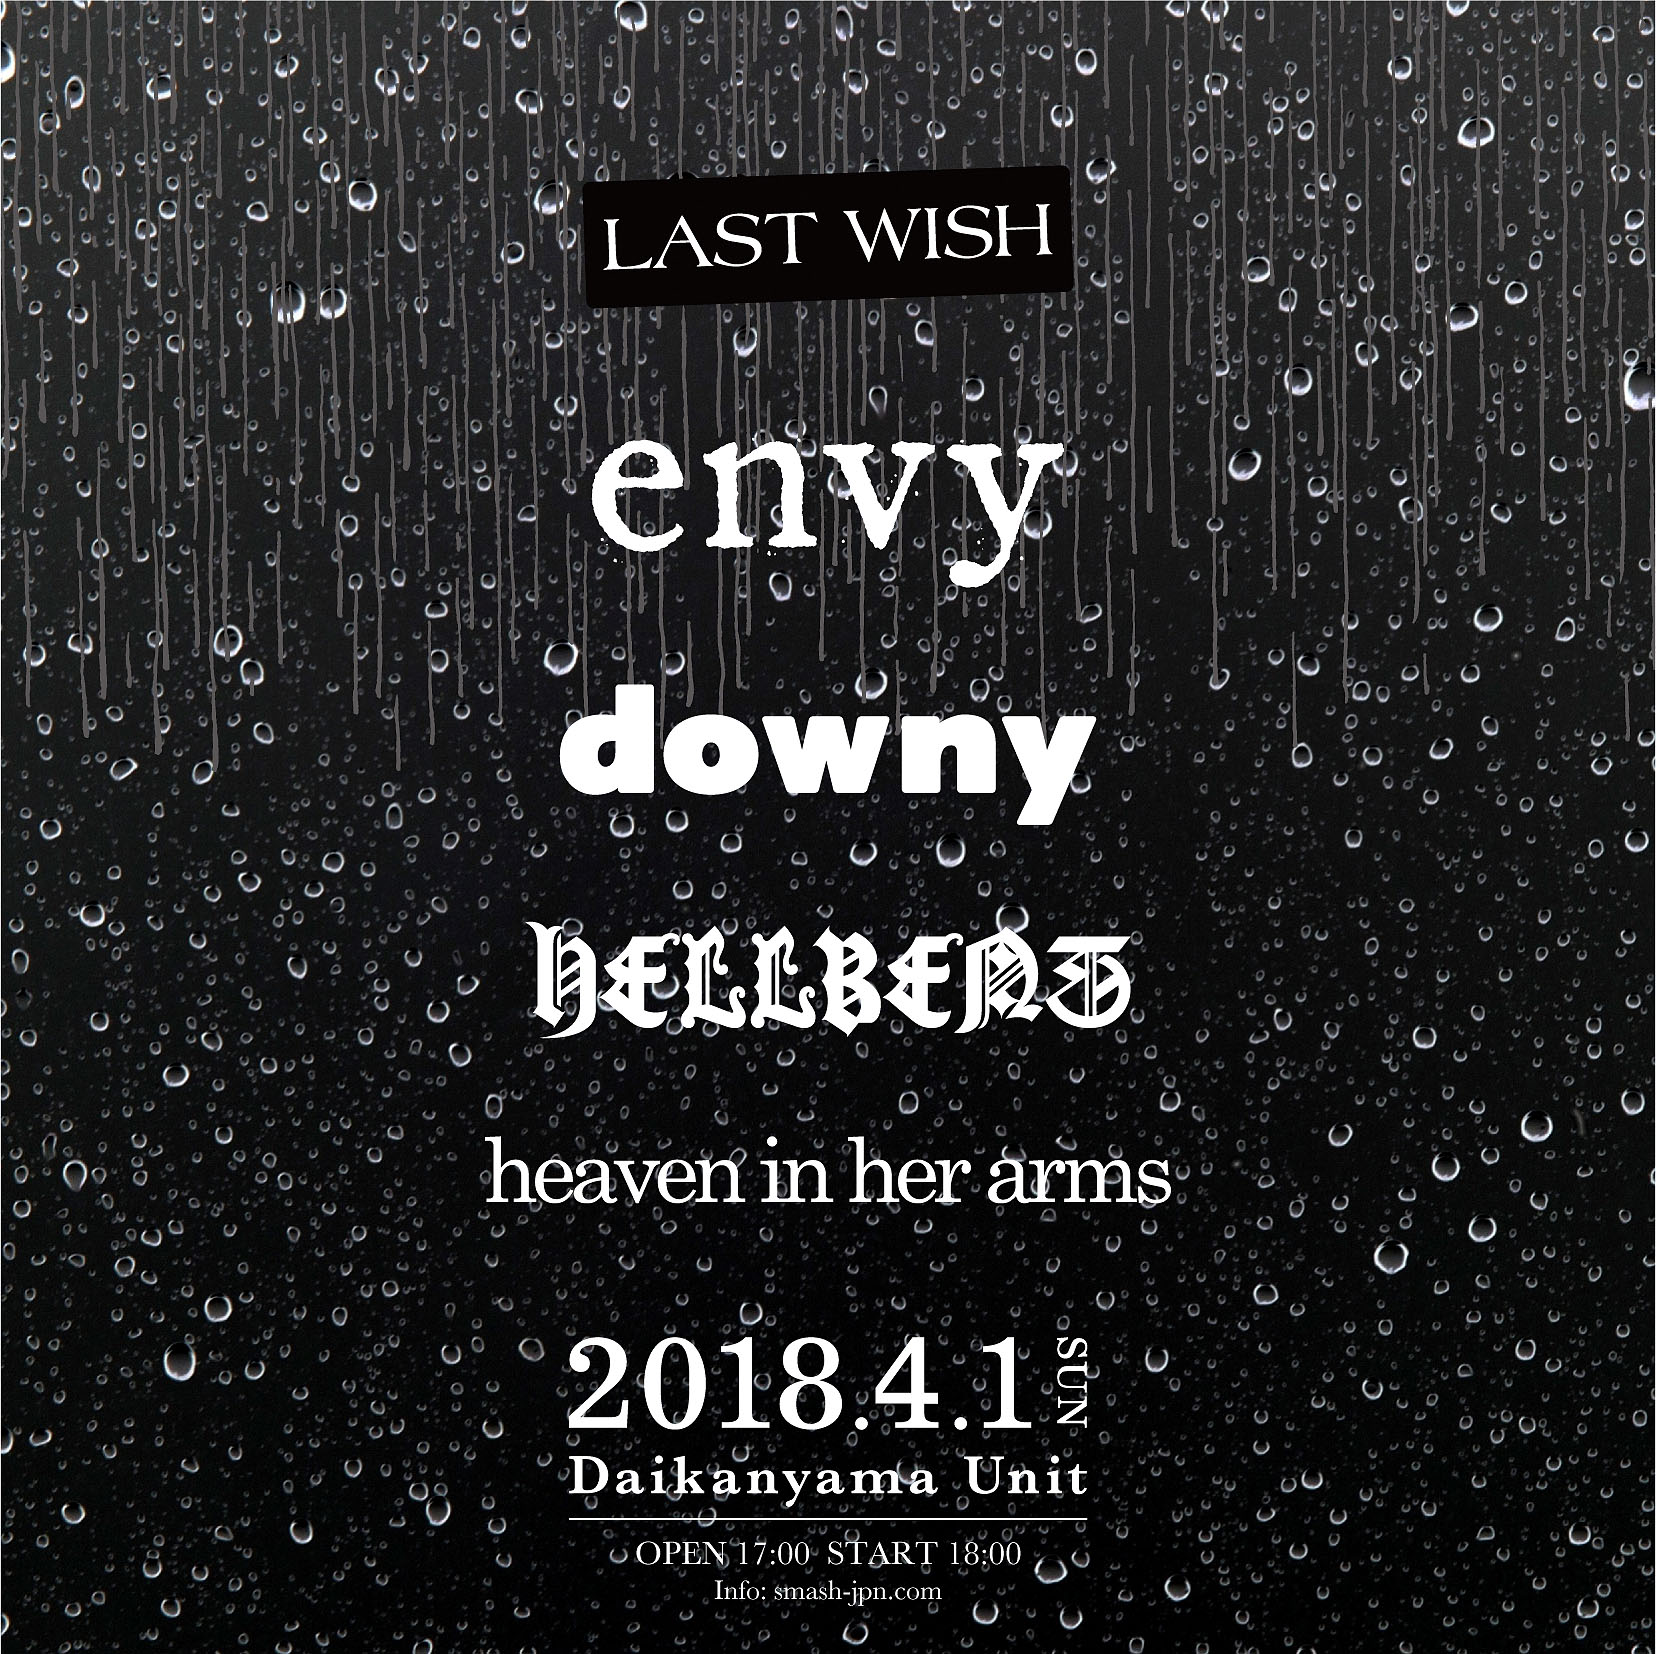 LAST WISH, envy downy hellbent heaven in her arms, 2018.4.1(SUN) at Daikanyama Unit